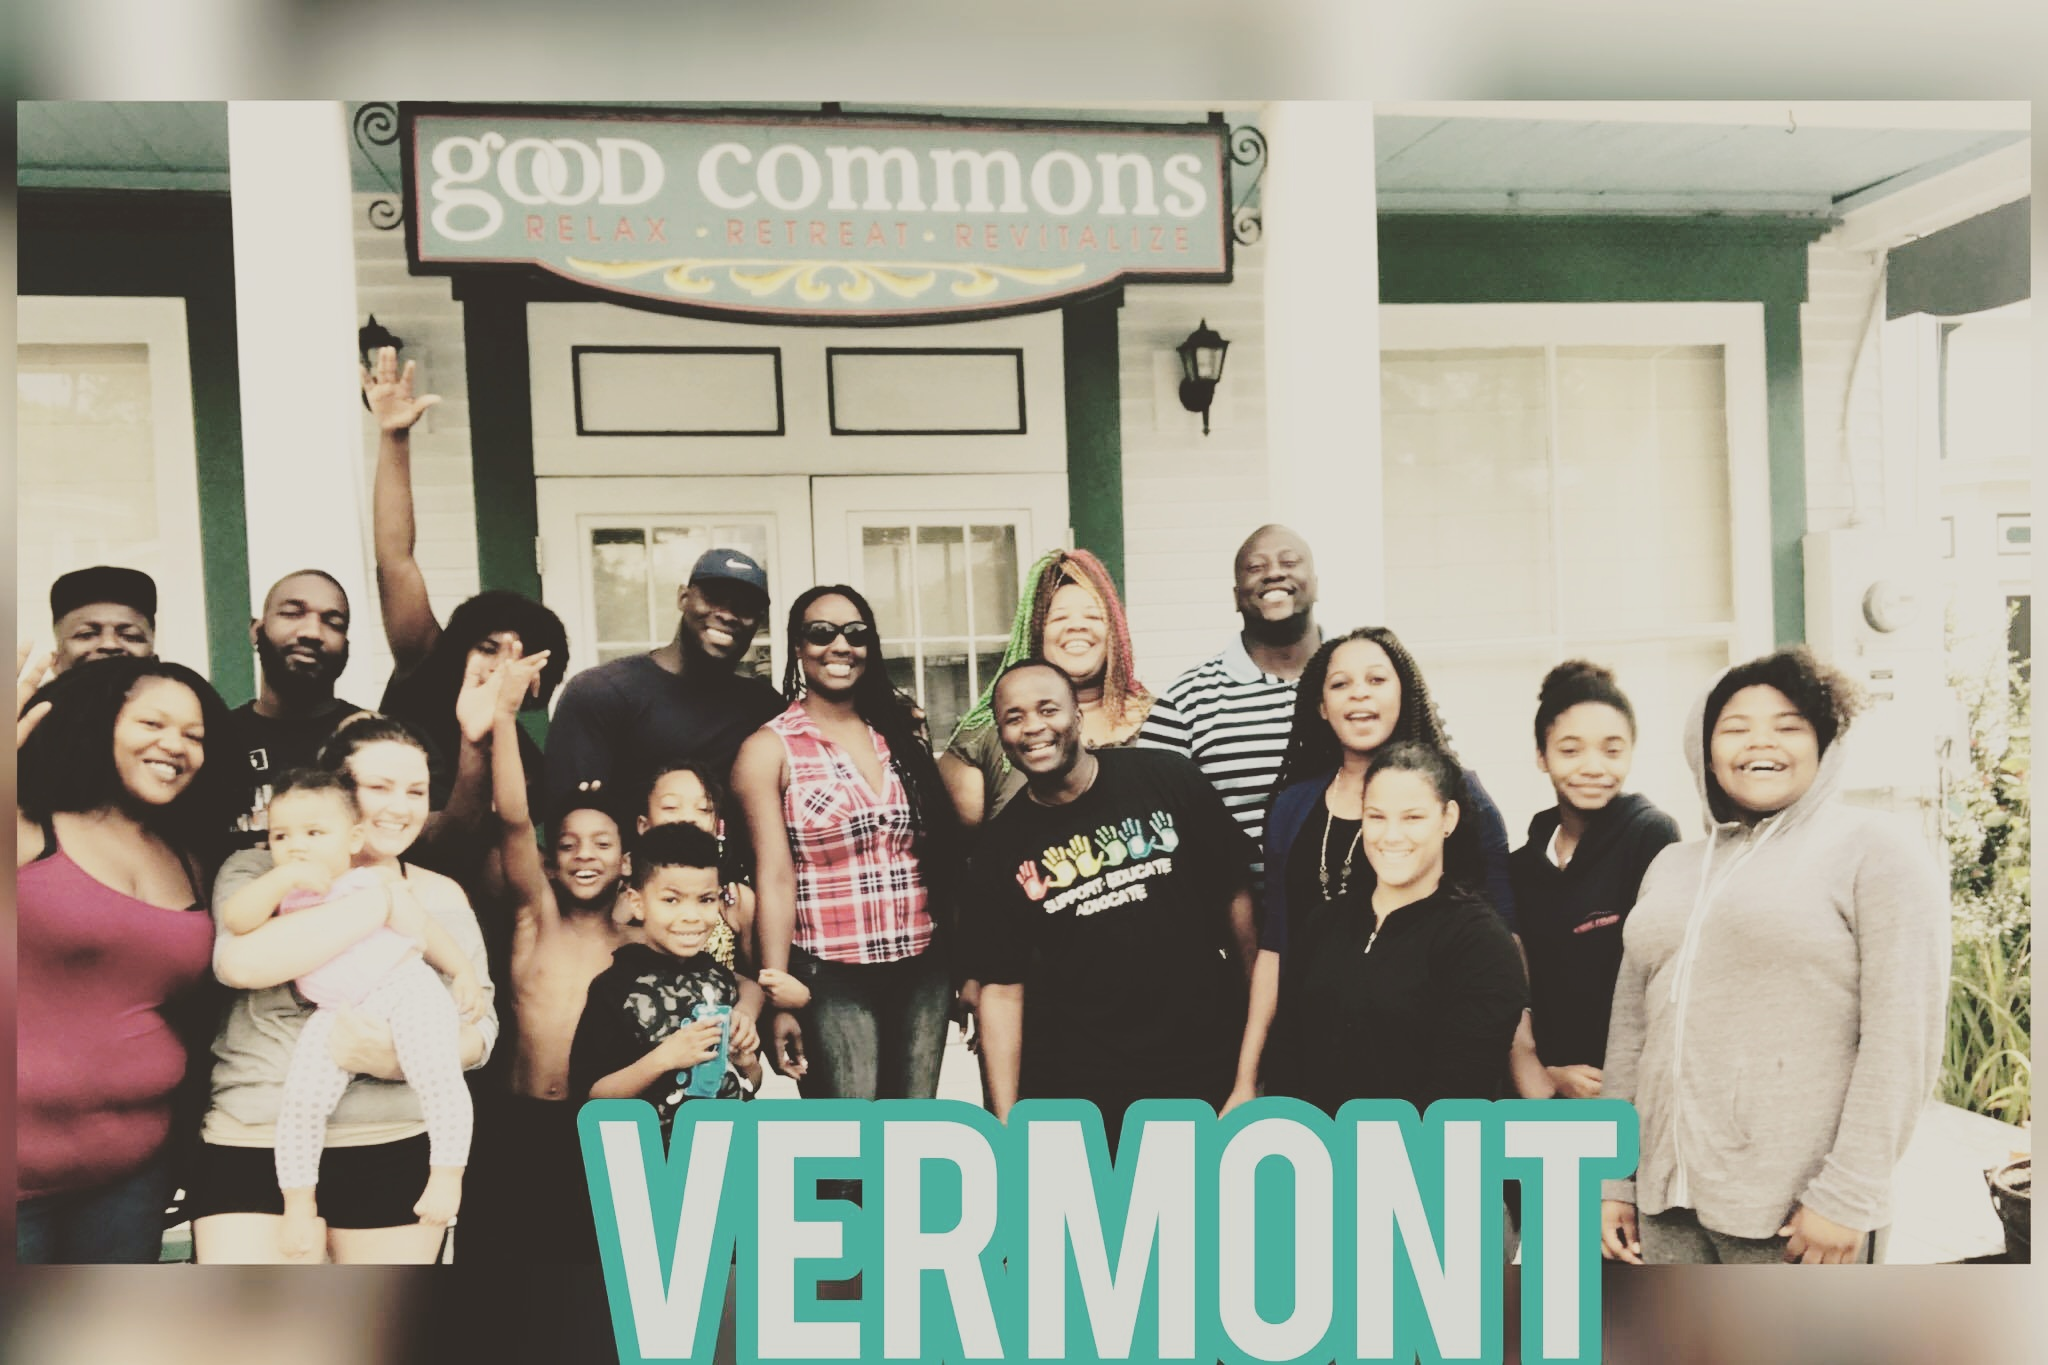 Vermont: A Retreat Just for You at Good Commons